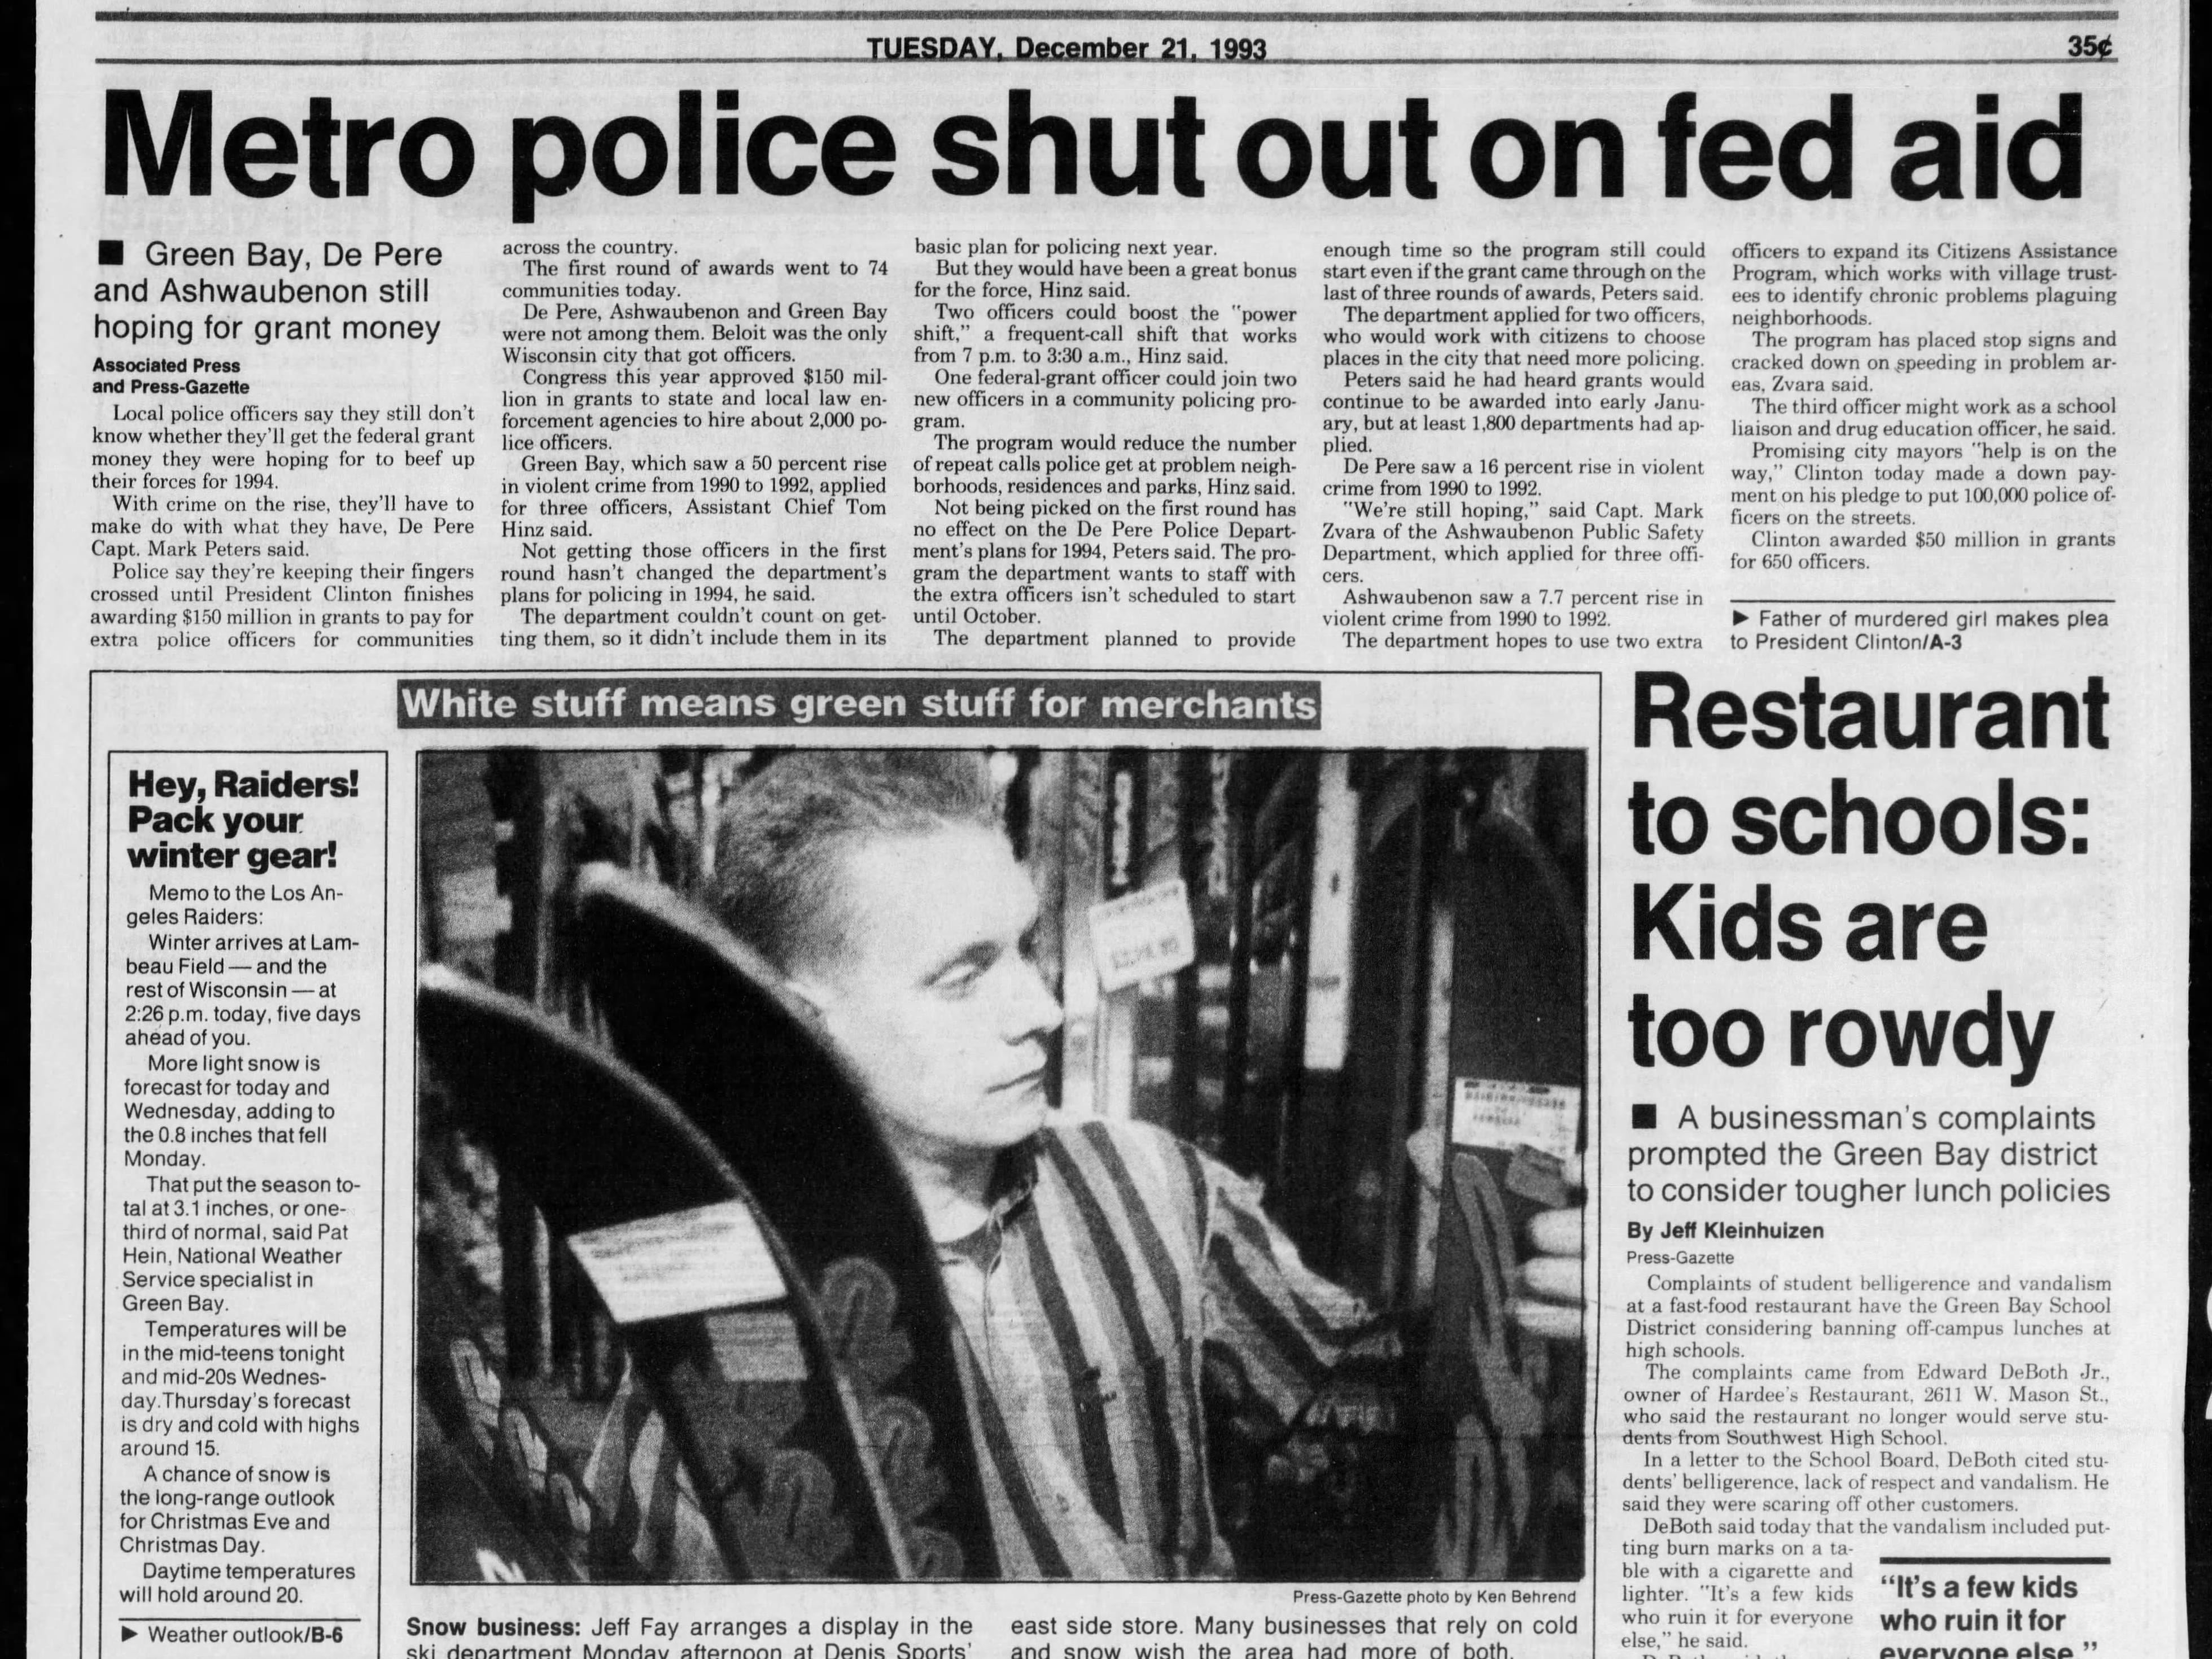 Today in History: Dec. 21, 1993